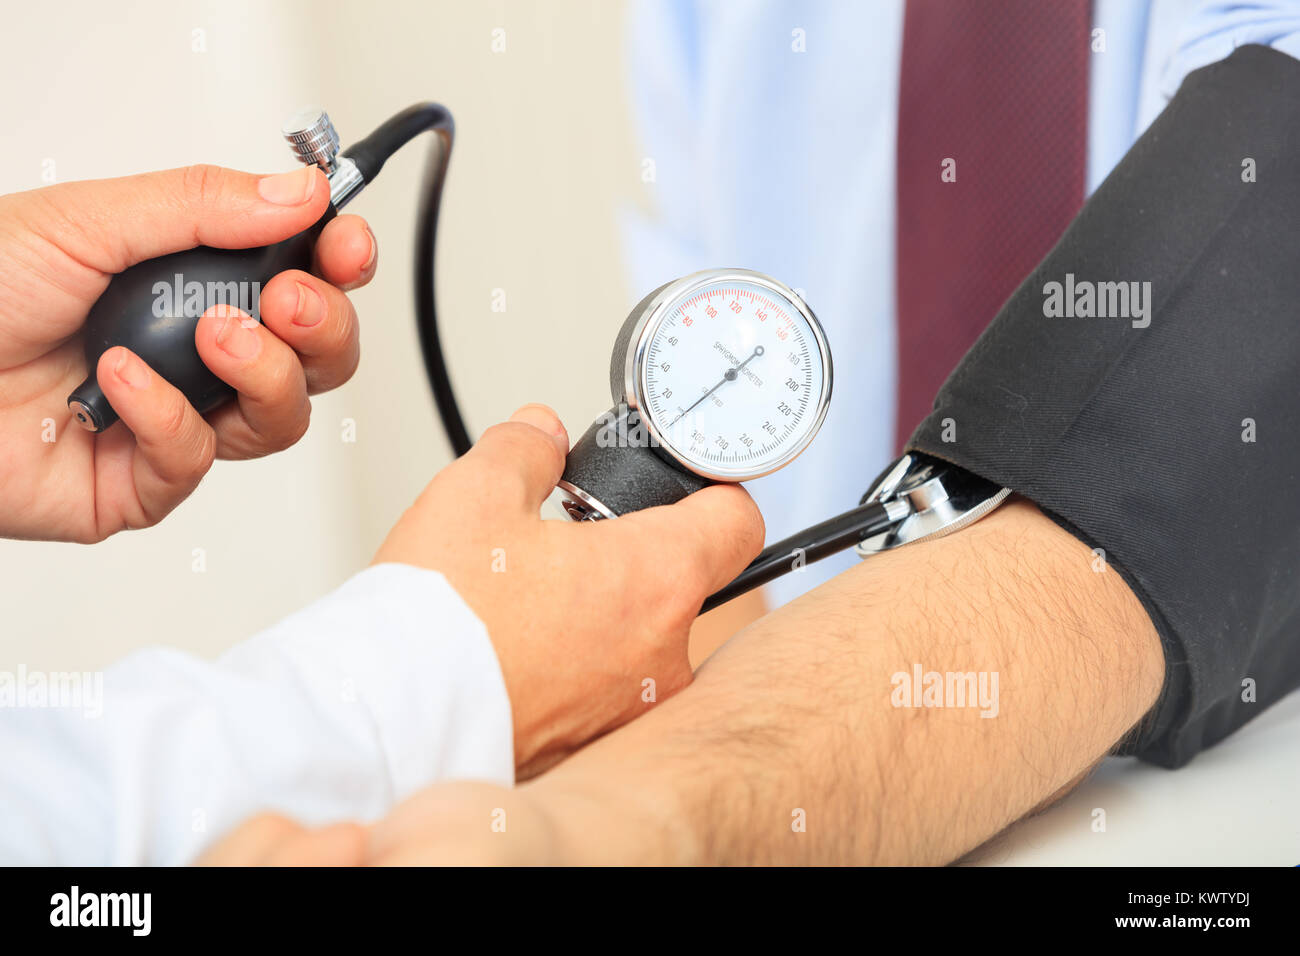 essay on taking blood pressure A reflective account of blood pressure testing during a clinical simulative skill session the clinical skill that i have decided to reflect on in this essay is the manual blood pressure test that i have performed on one of my colleague during a simulative clinical skills session.